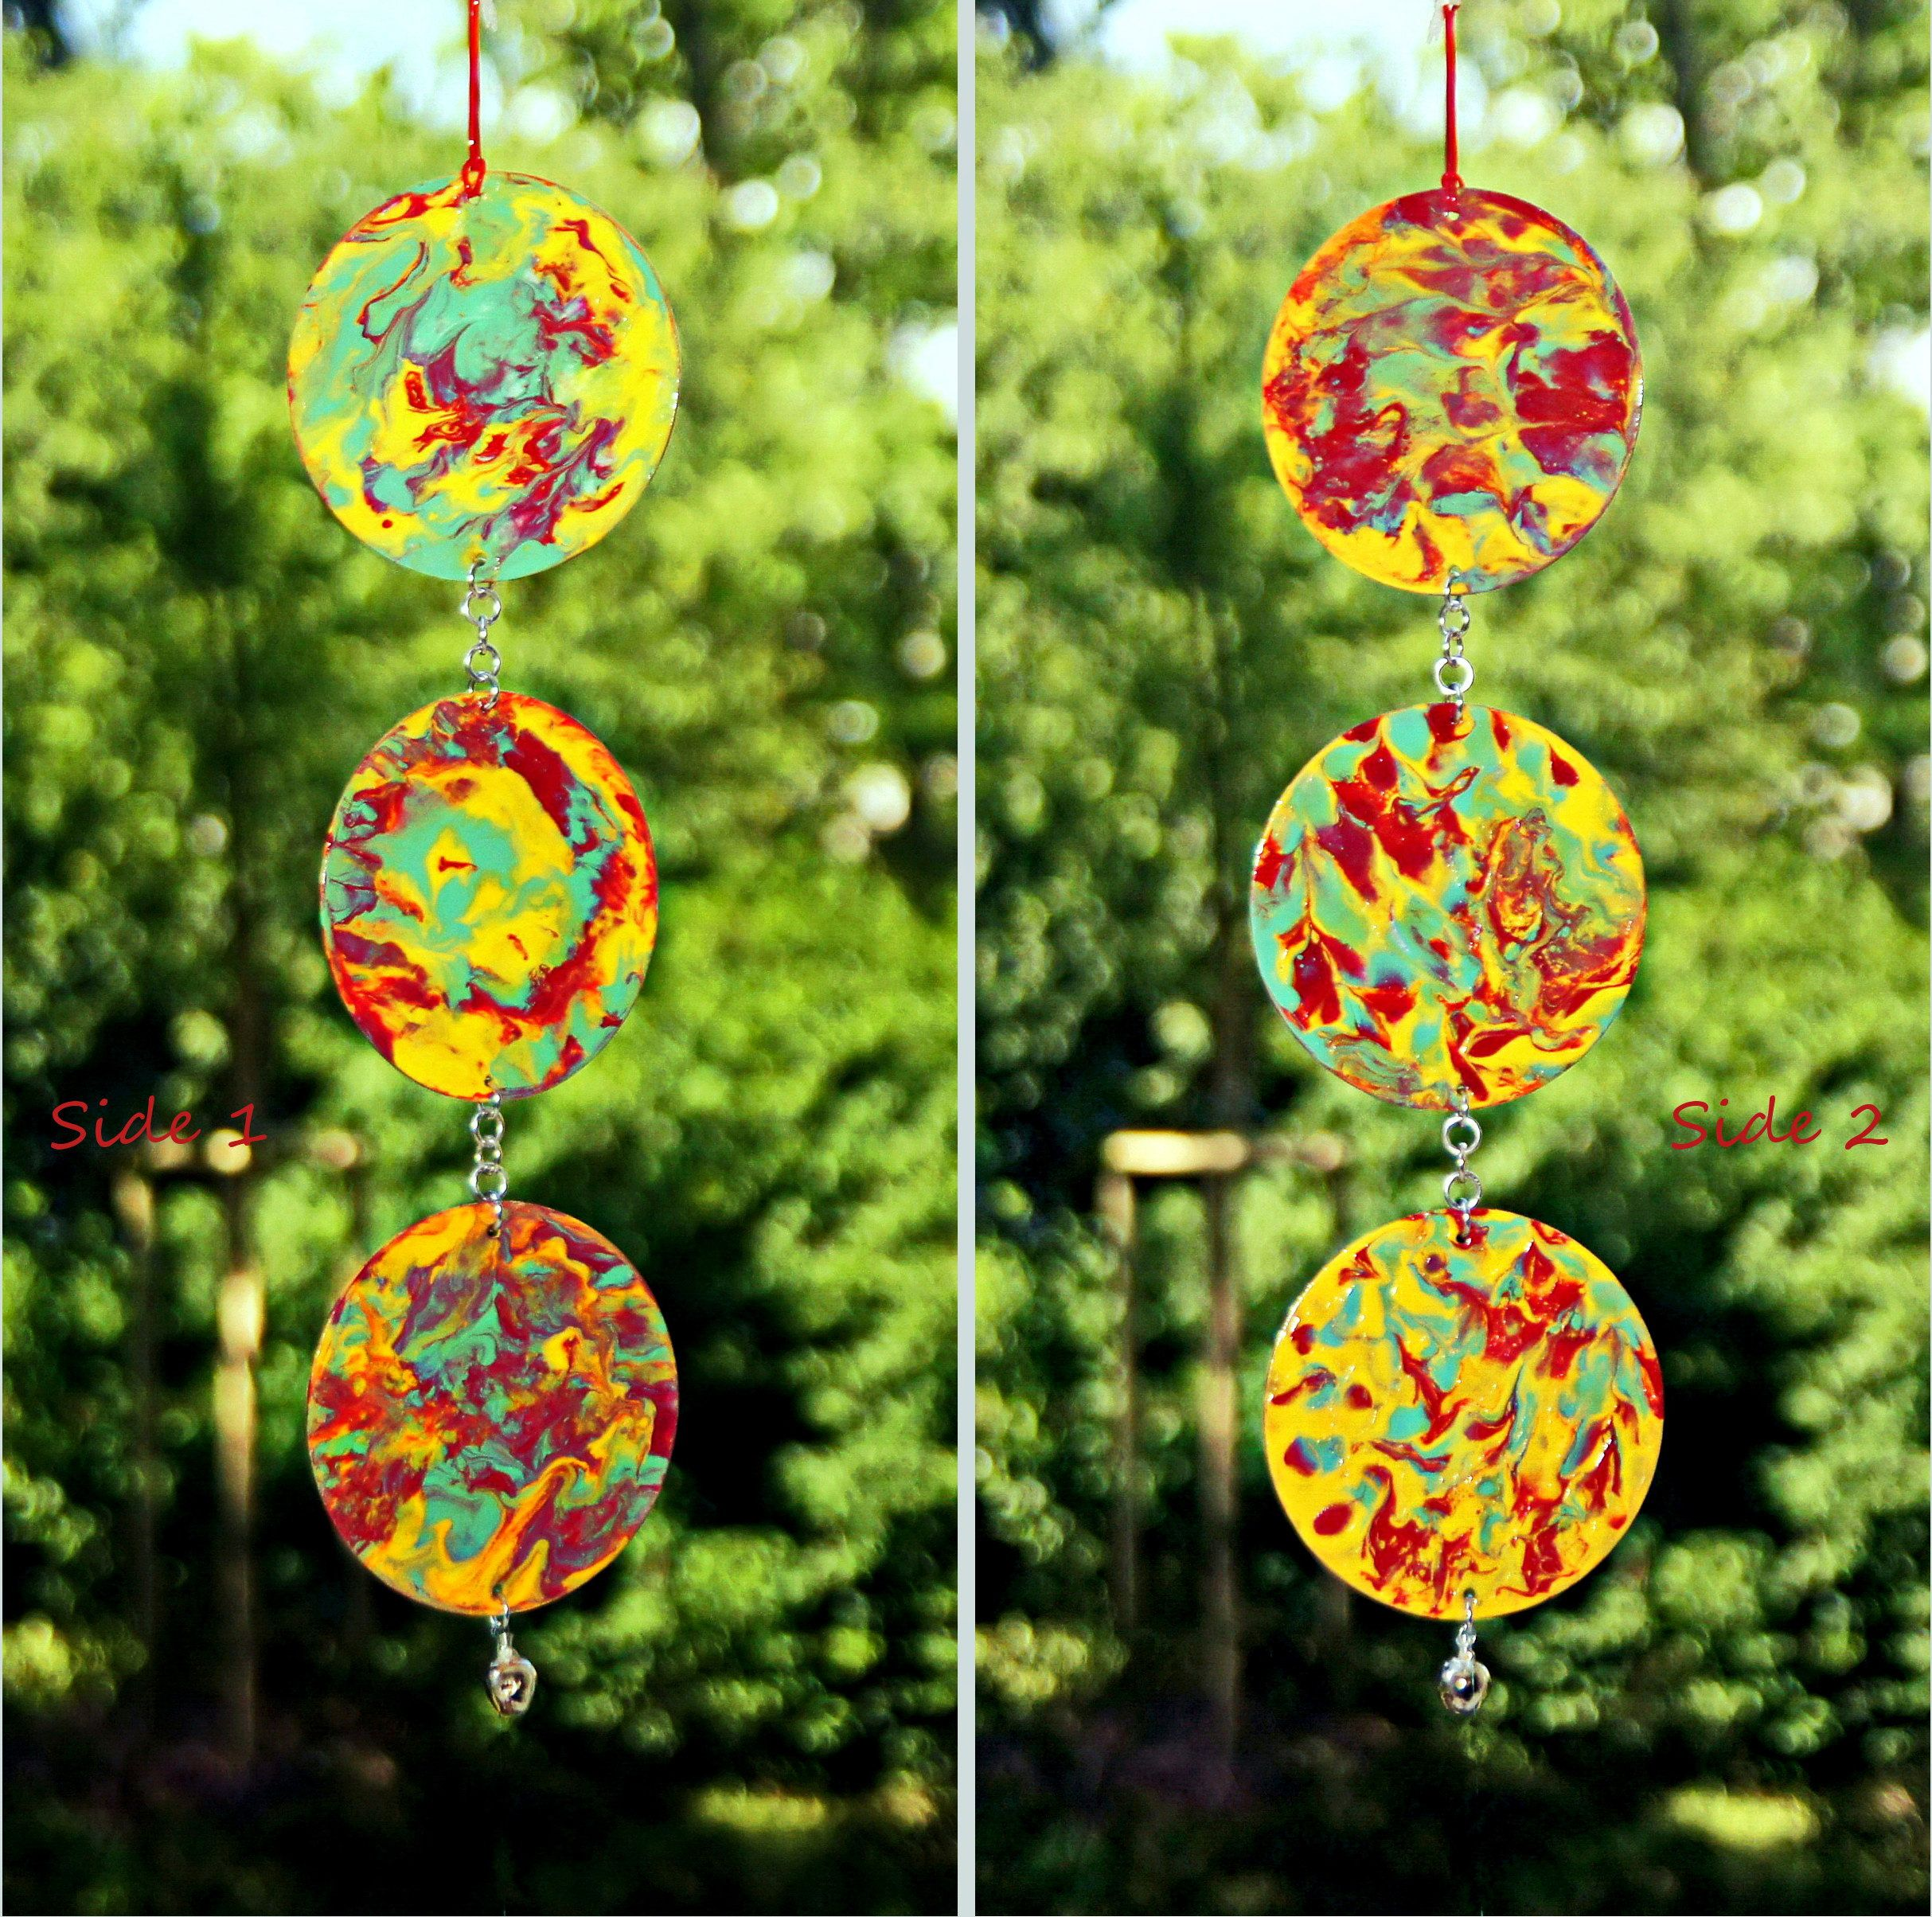 Homemade Whimsical Wind Chimes Sun Catcher Original Design